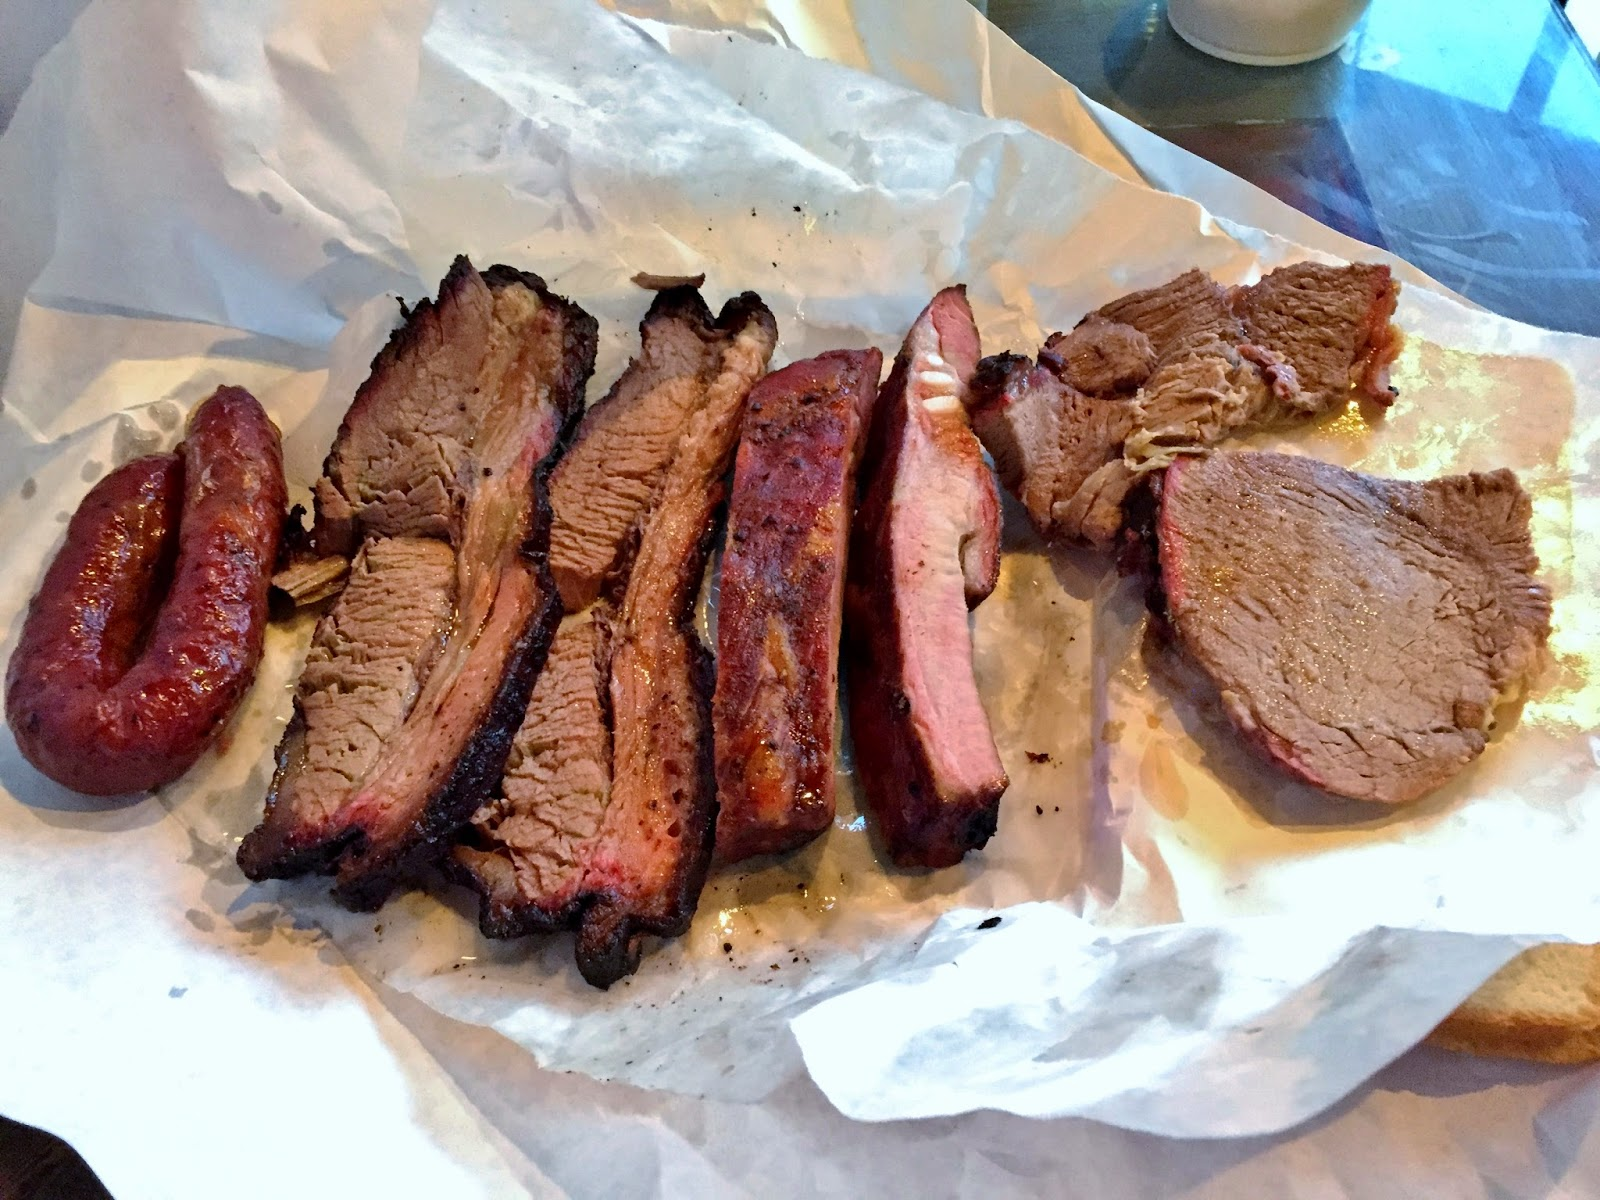 The spread of meats from Plano's Lockhart Smokehouse